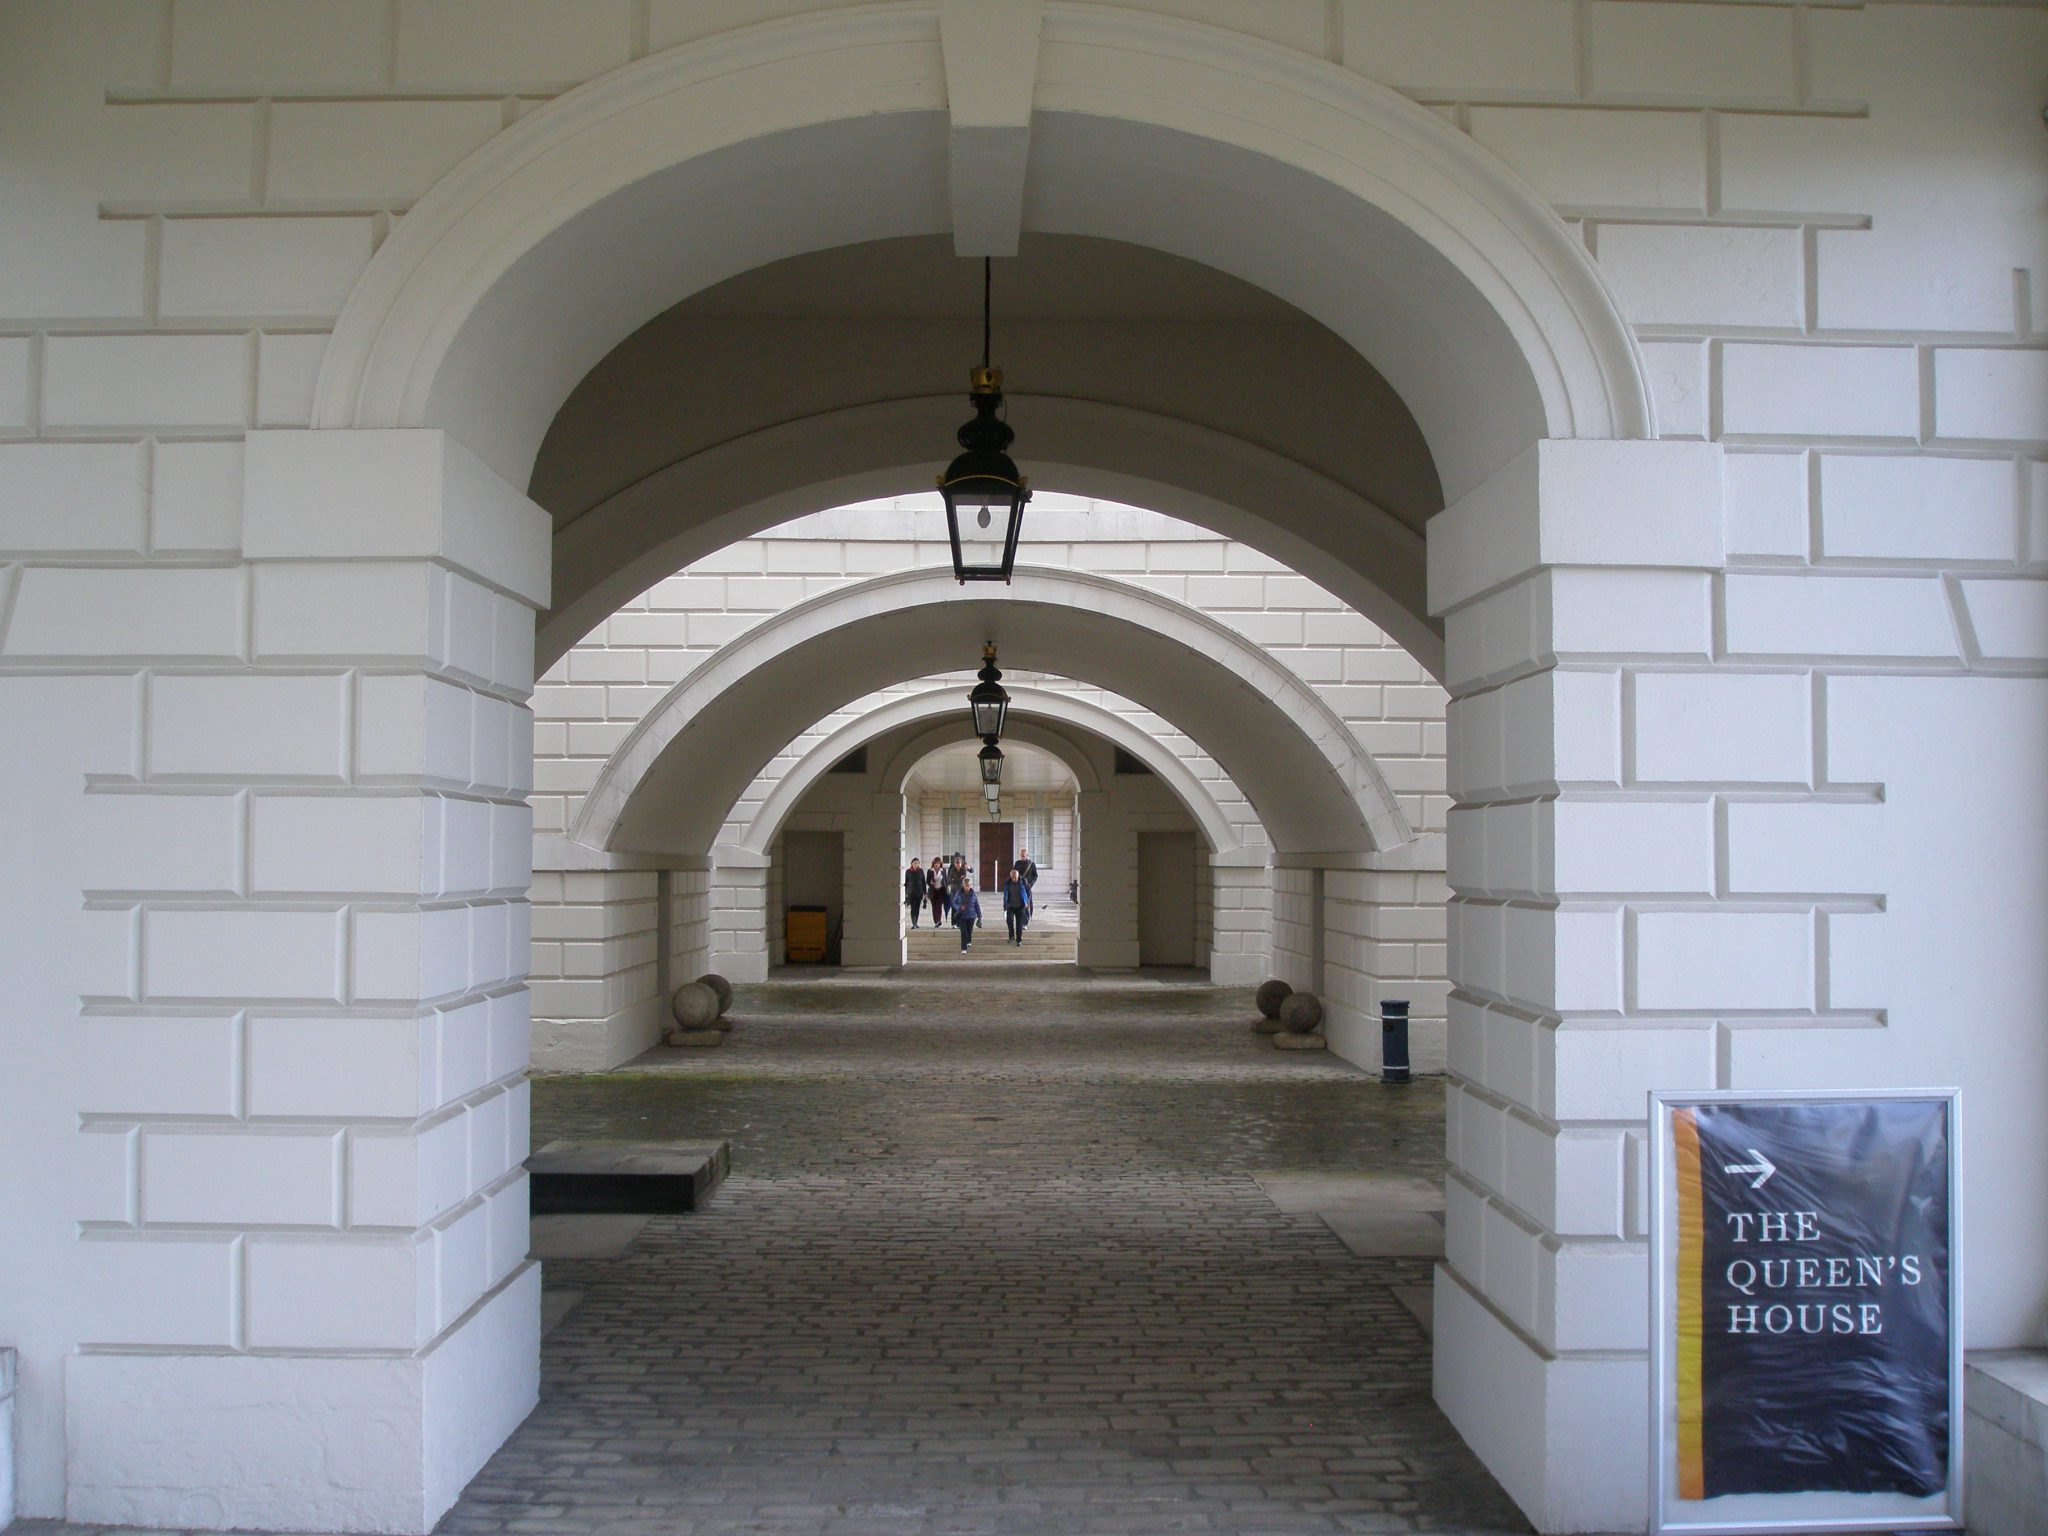 Basement level corridor, The Queen's House